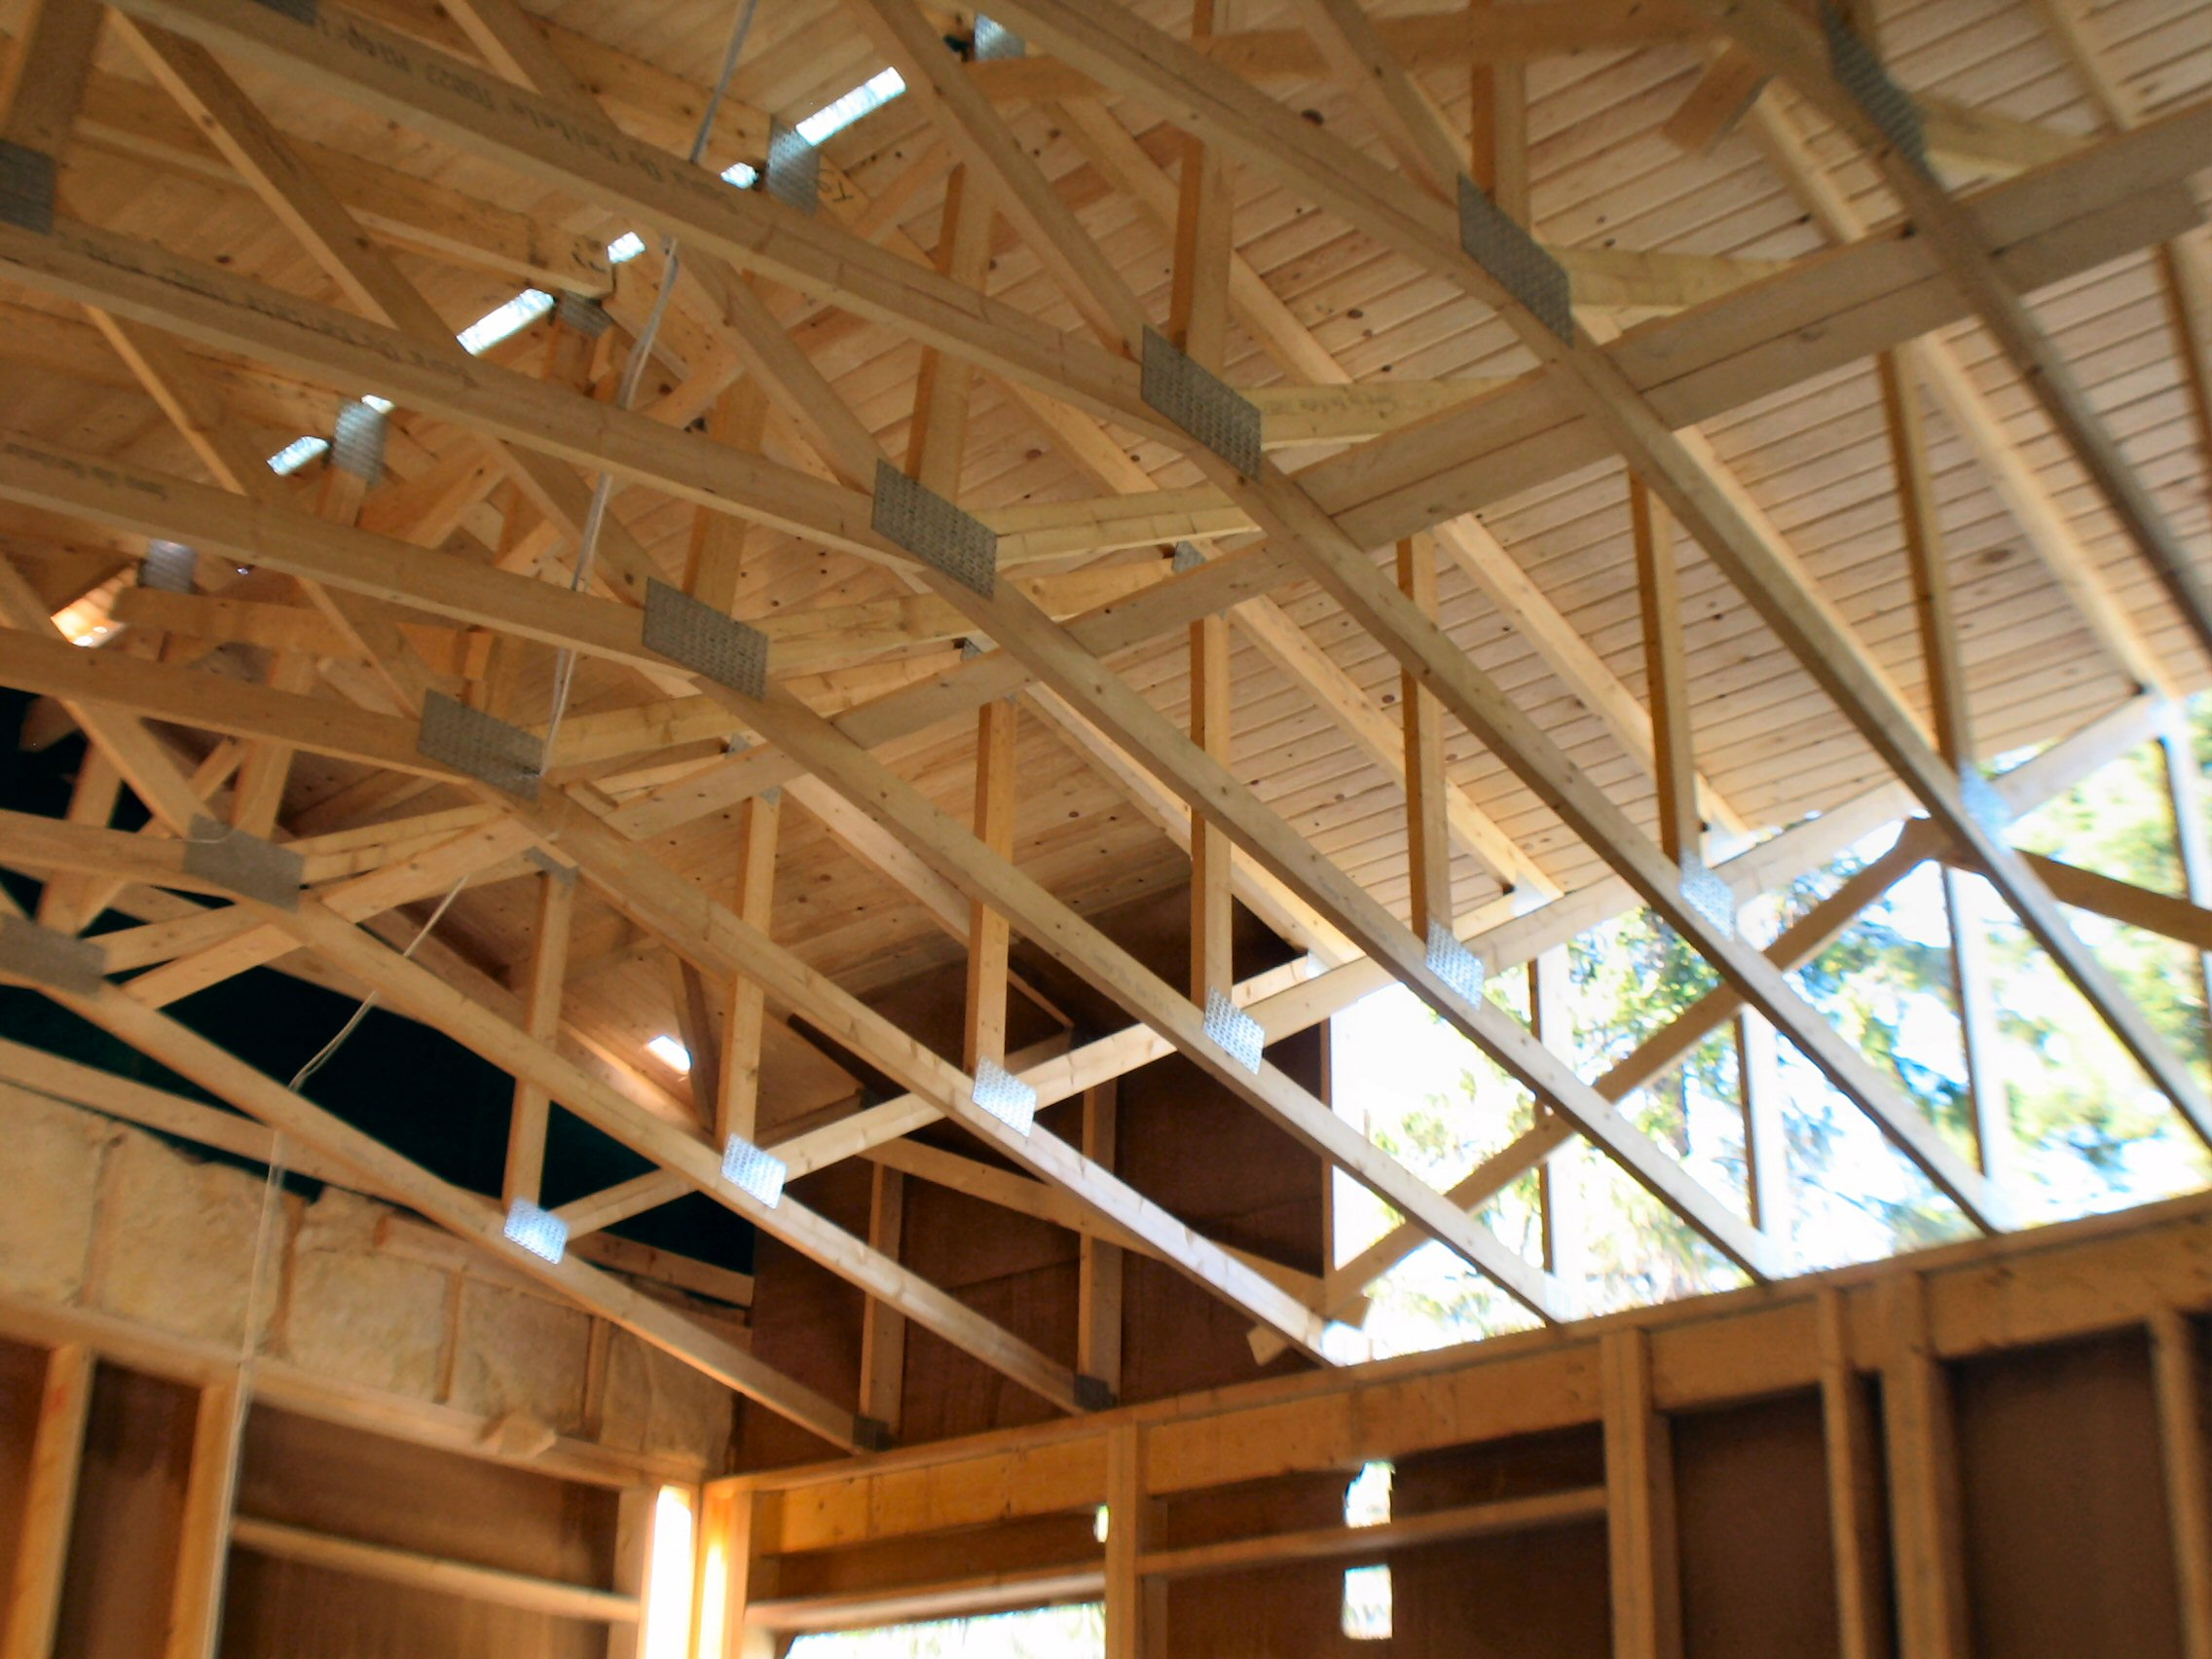 File:Wooden roof structure.jpg - Wikimedia Commons